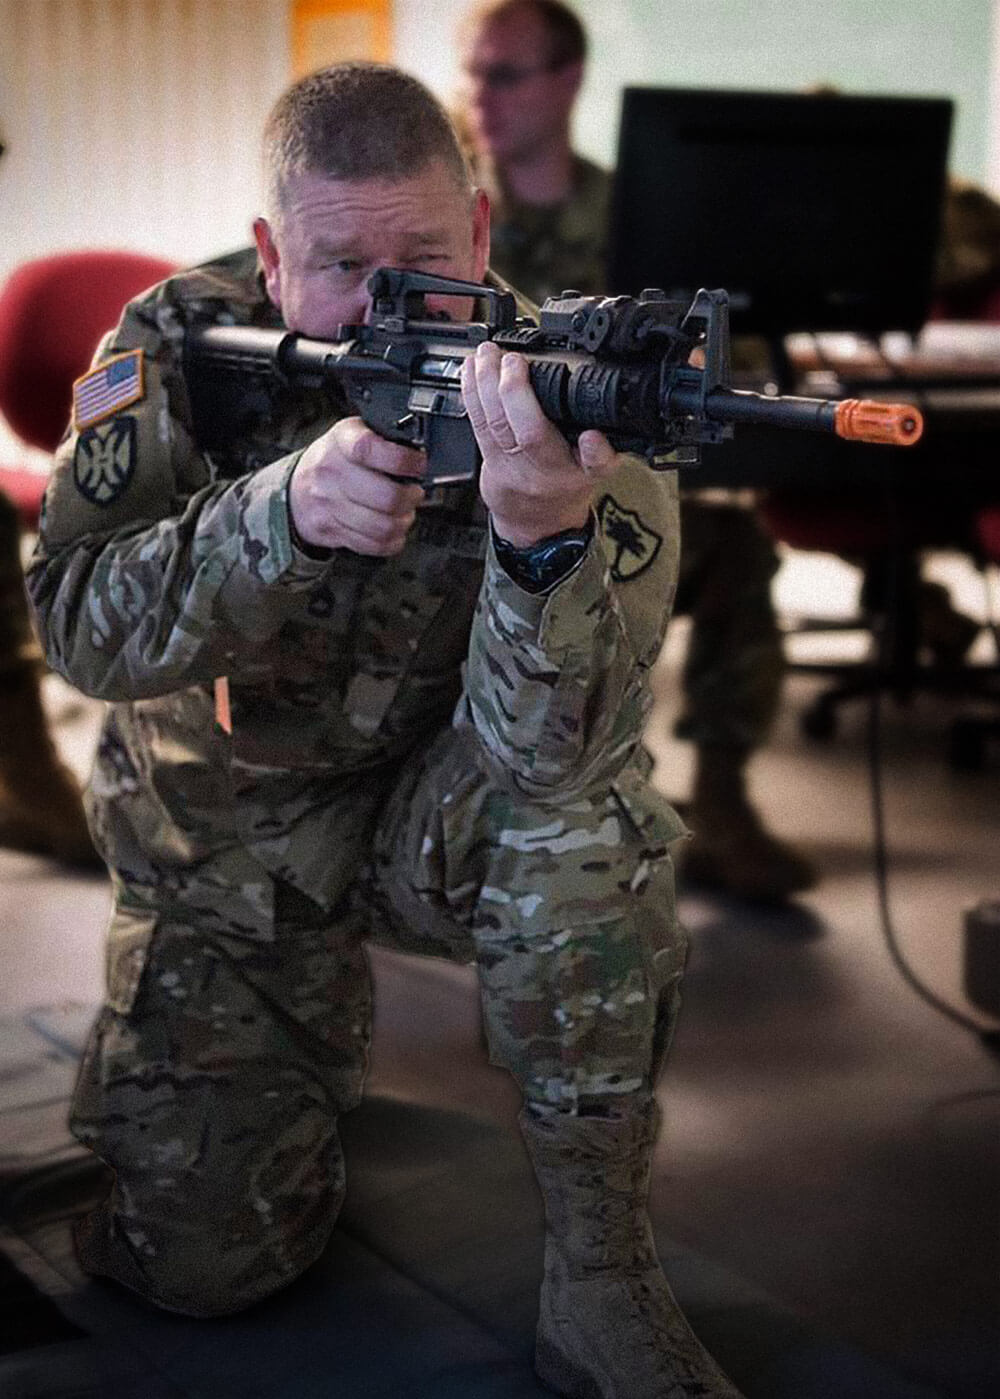 A South Carolina Army National Guard Soldier with the Marksmanship Training Unit demonstrates how to use the Mobile Marksmanship Training Simulator to Soldiers of the 108th Public Affairs Detachment while training at the Bluff Road Armory, Columbia, S.C., in May of 2018. South Carolina Army National Guard photo by SSG Jerry Boffen